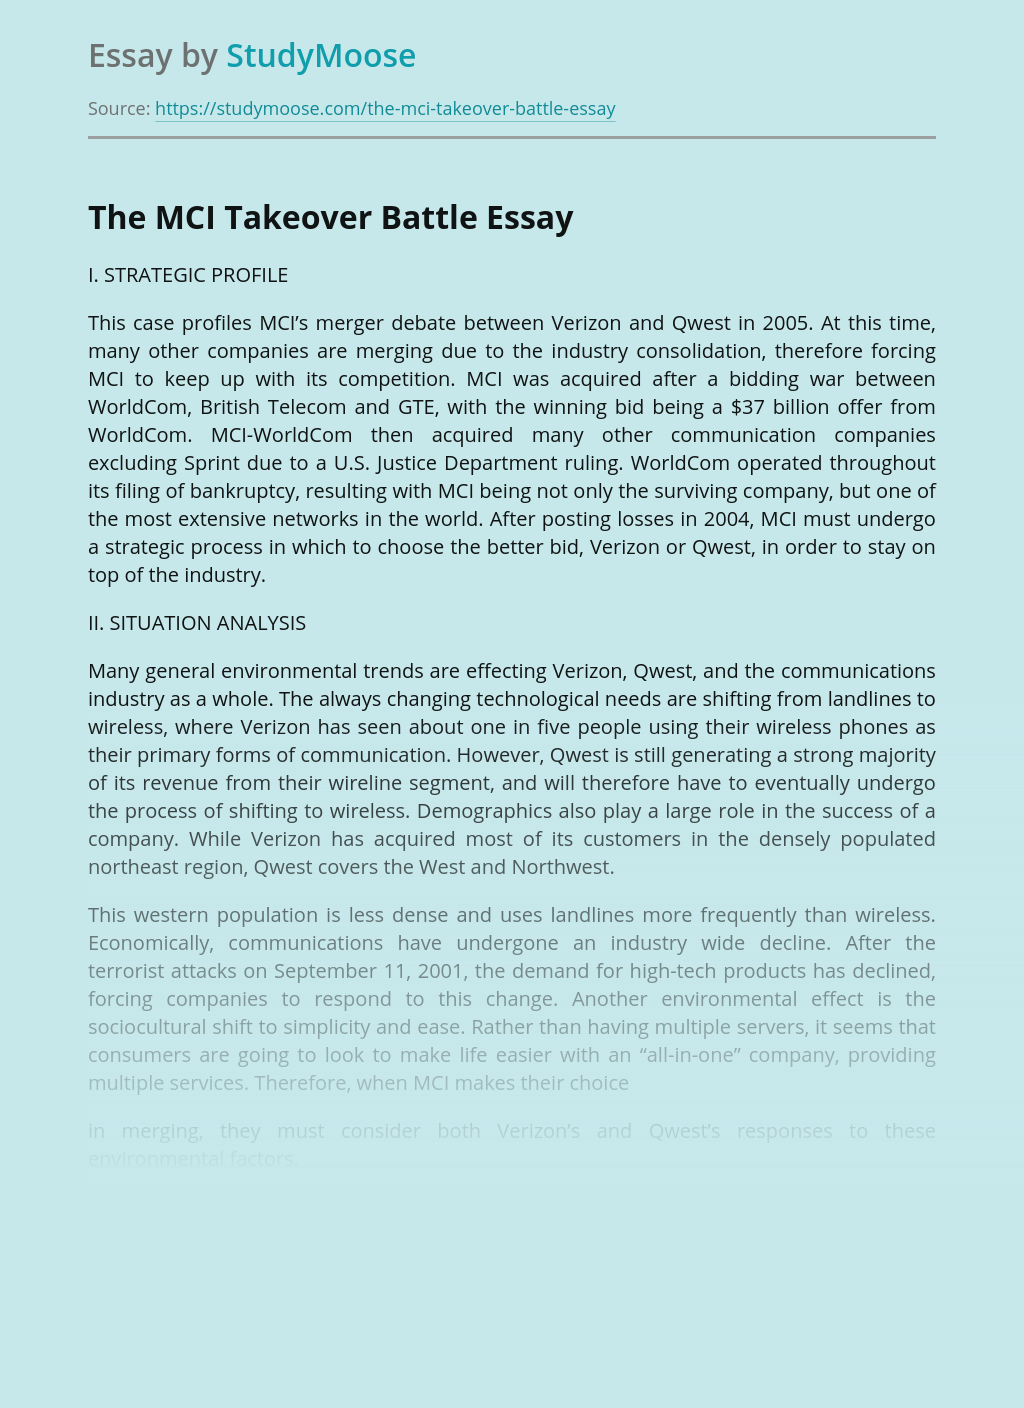 Business Management of The MCI